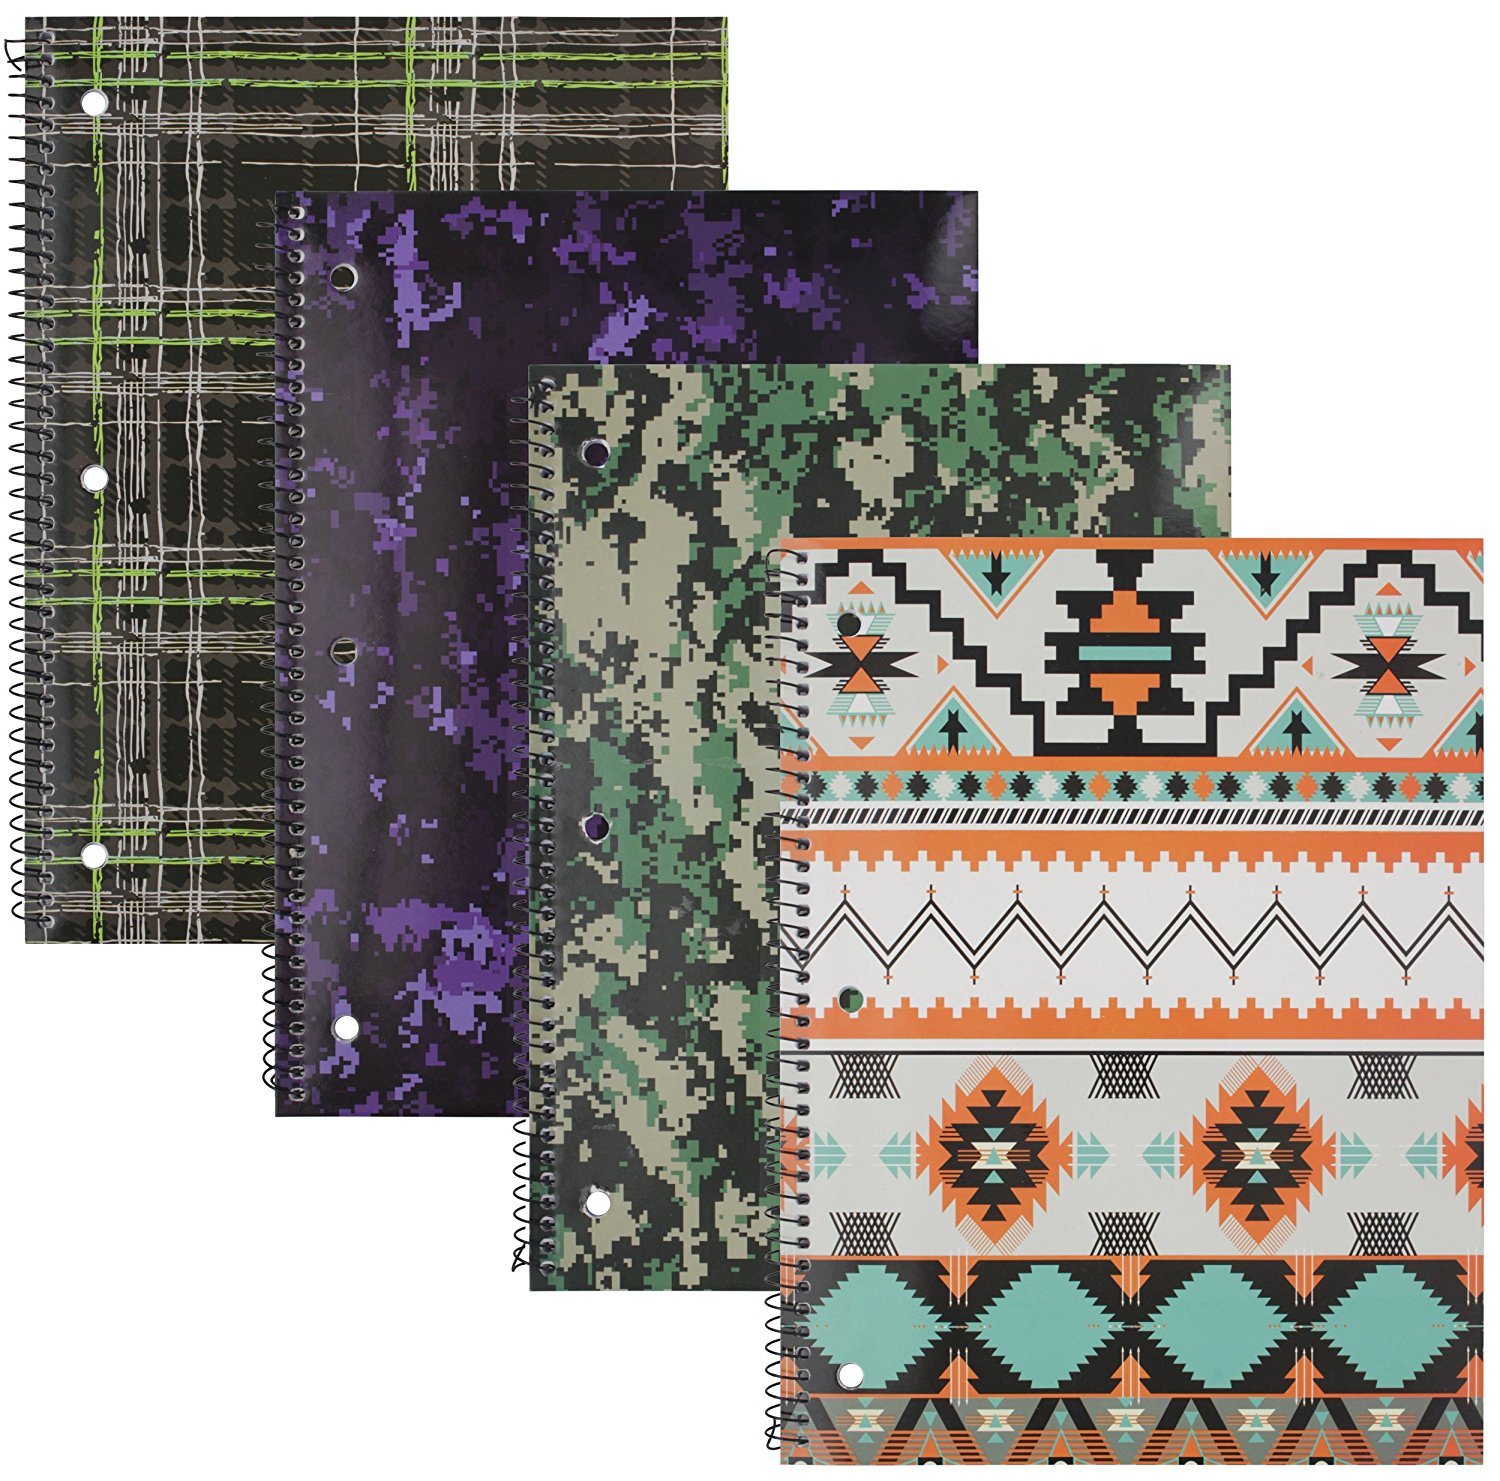 Emraw Heritage Notebook Spiral with 60 Sheets of Wide Ruled White Paper - Set Includes: Green Plaid, Tribal, Green Camo & Blue/Purple Camo Covers (4 Pack)